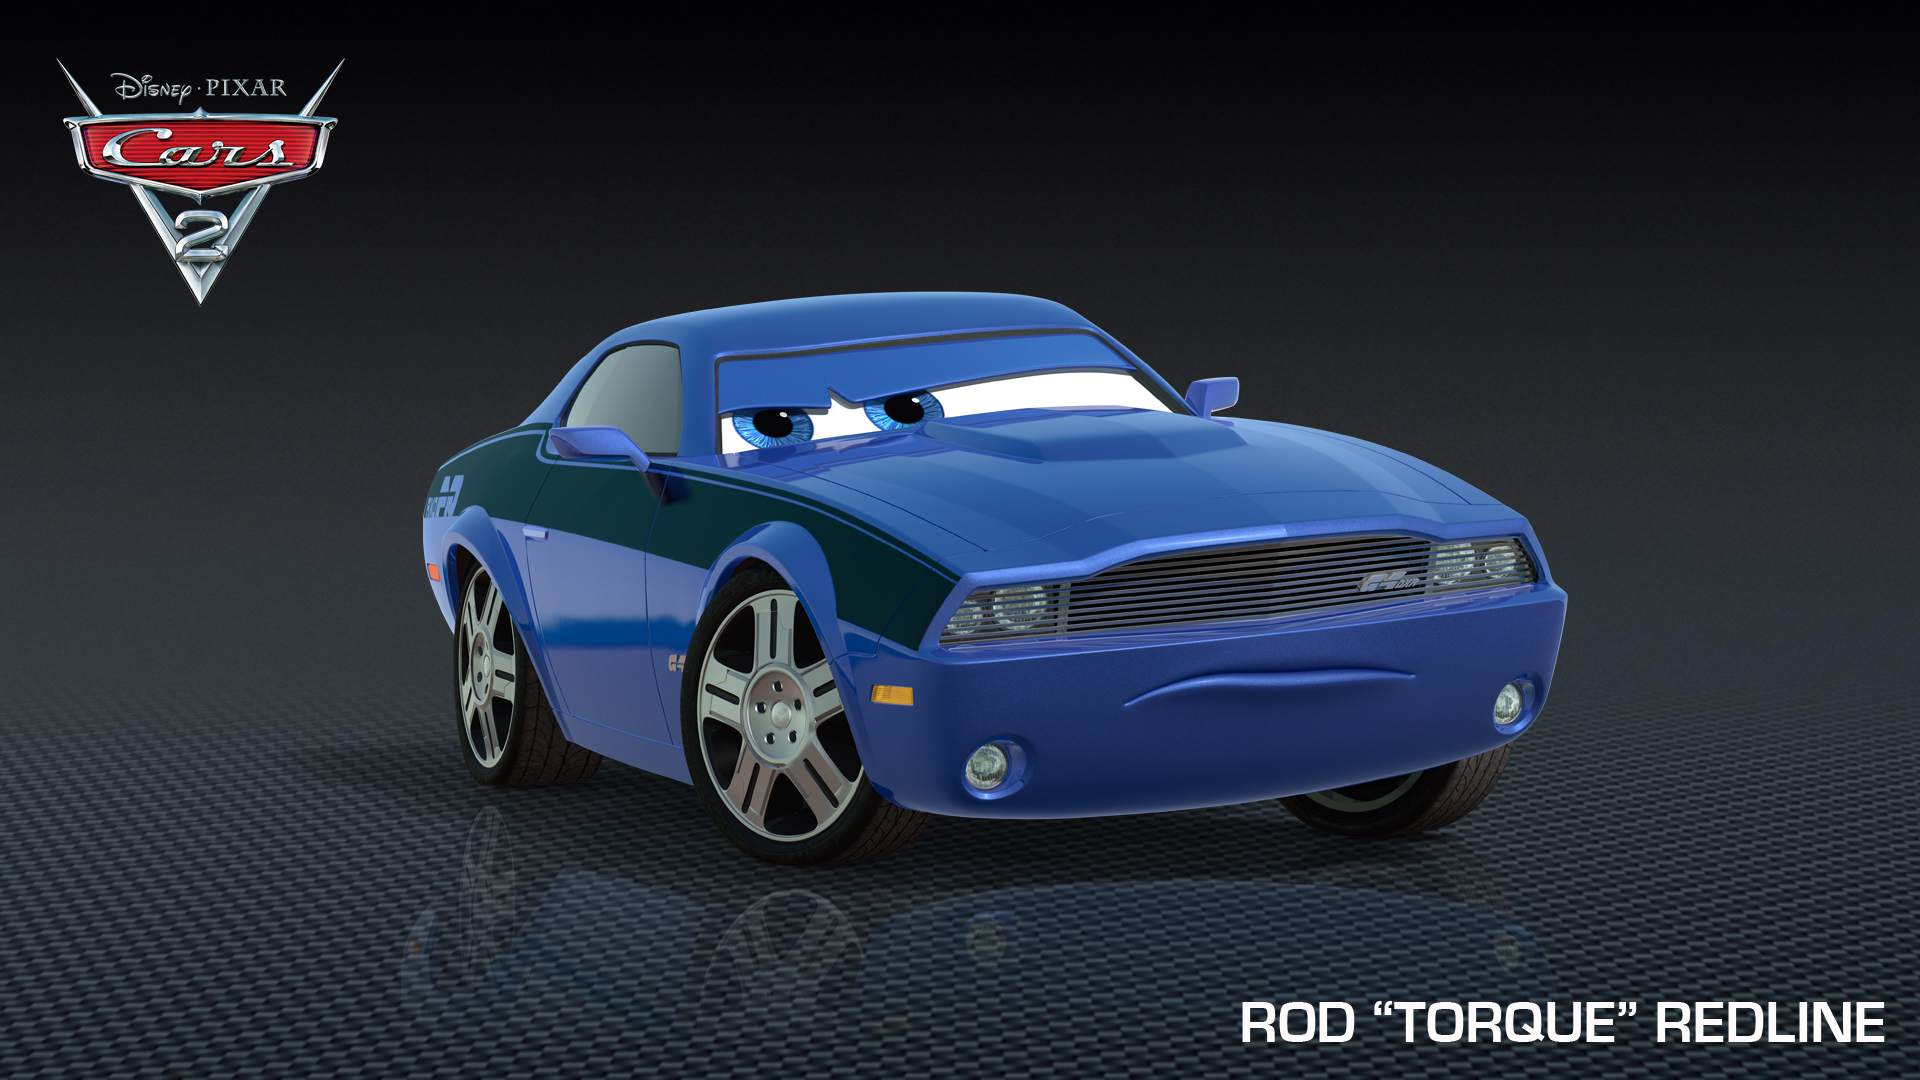 Rod Torque Redline A Character In Disney Pixar S Cars 2 Is Voiced